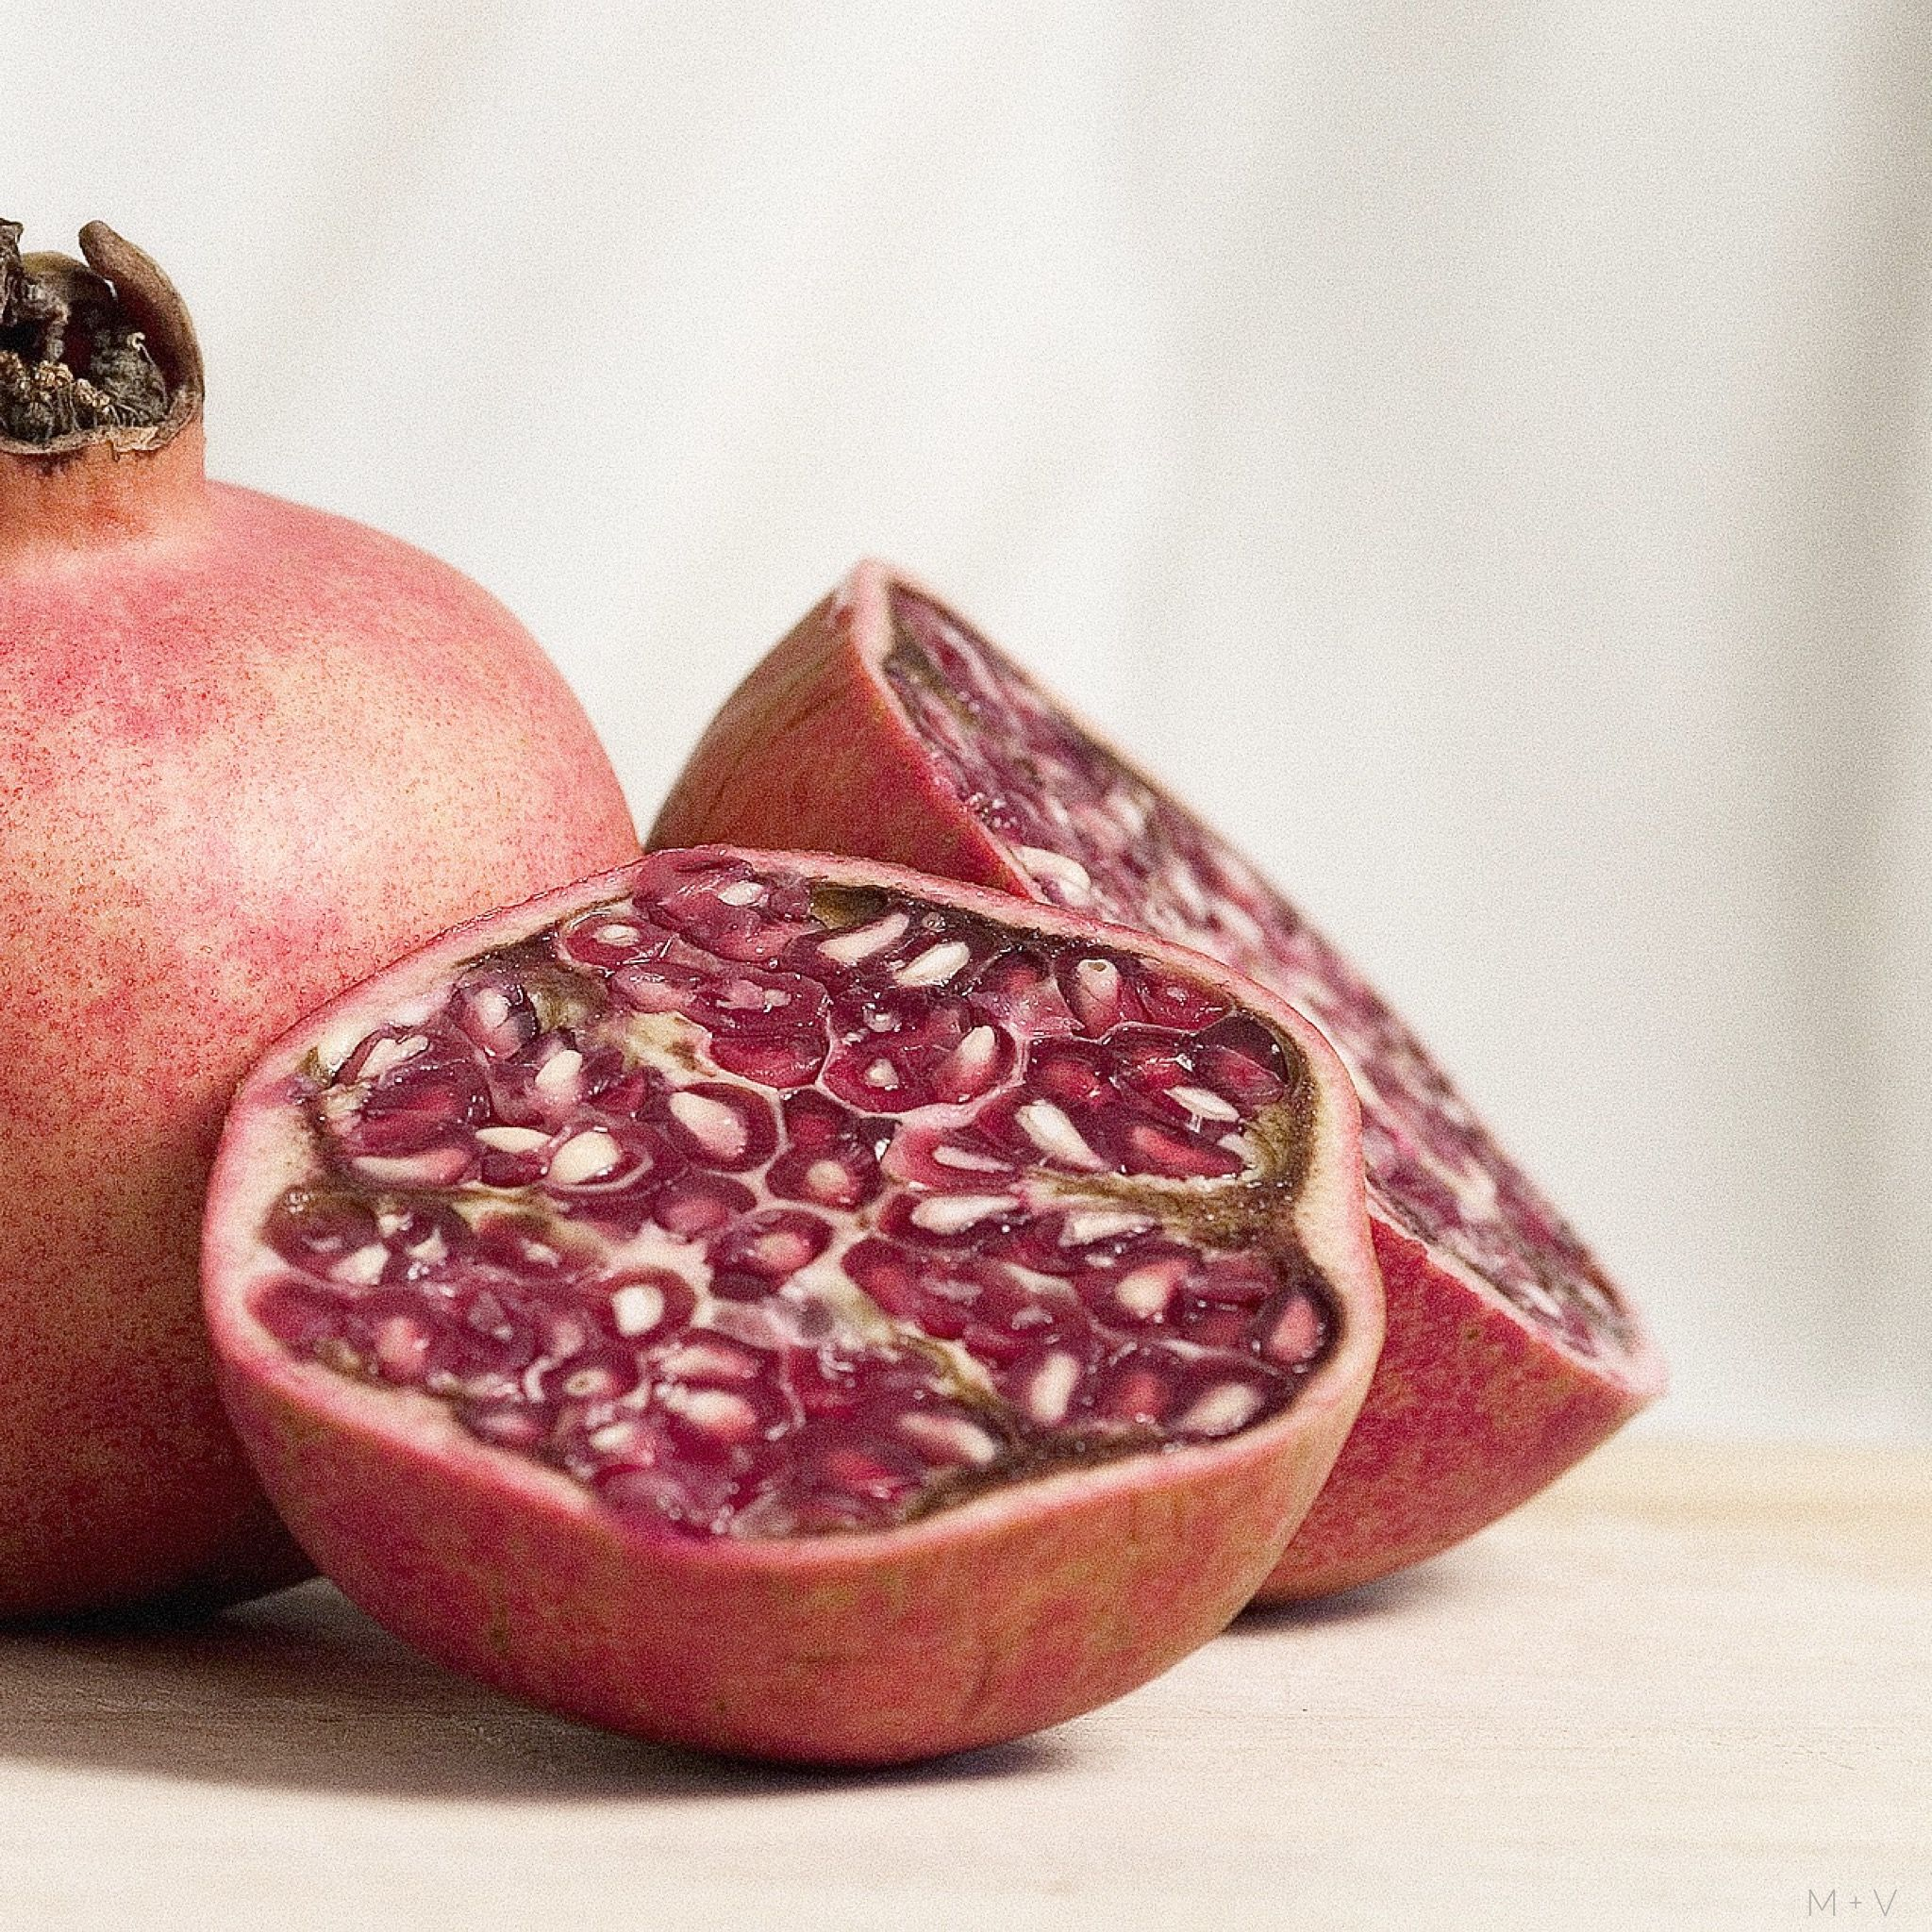 pomegranate juice is vitamin rich containing more than 100